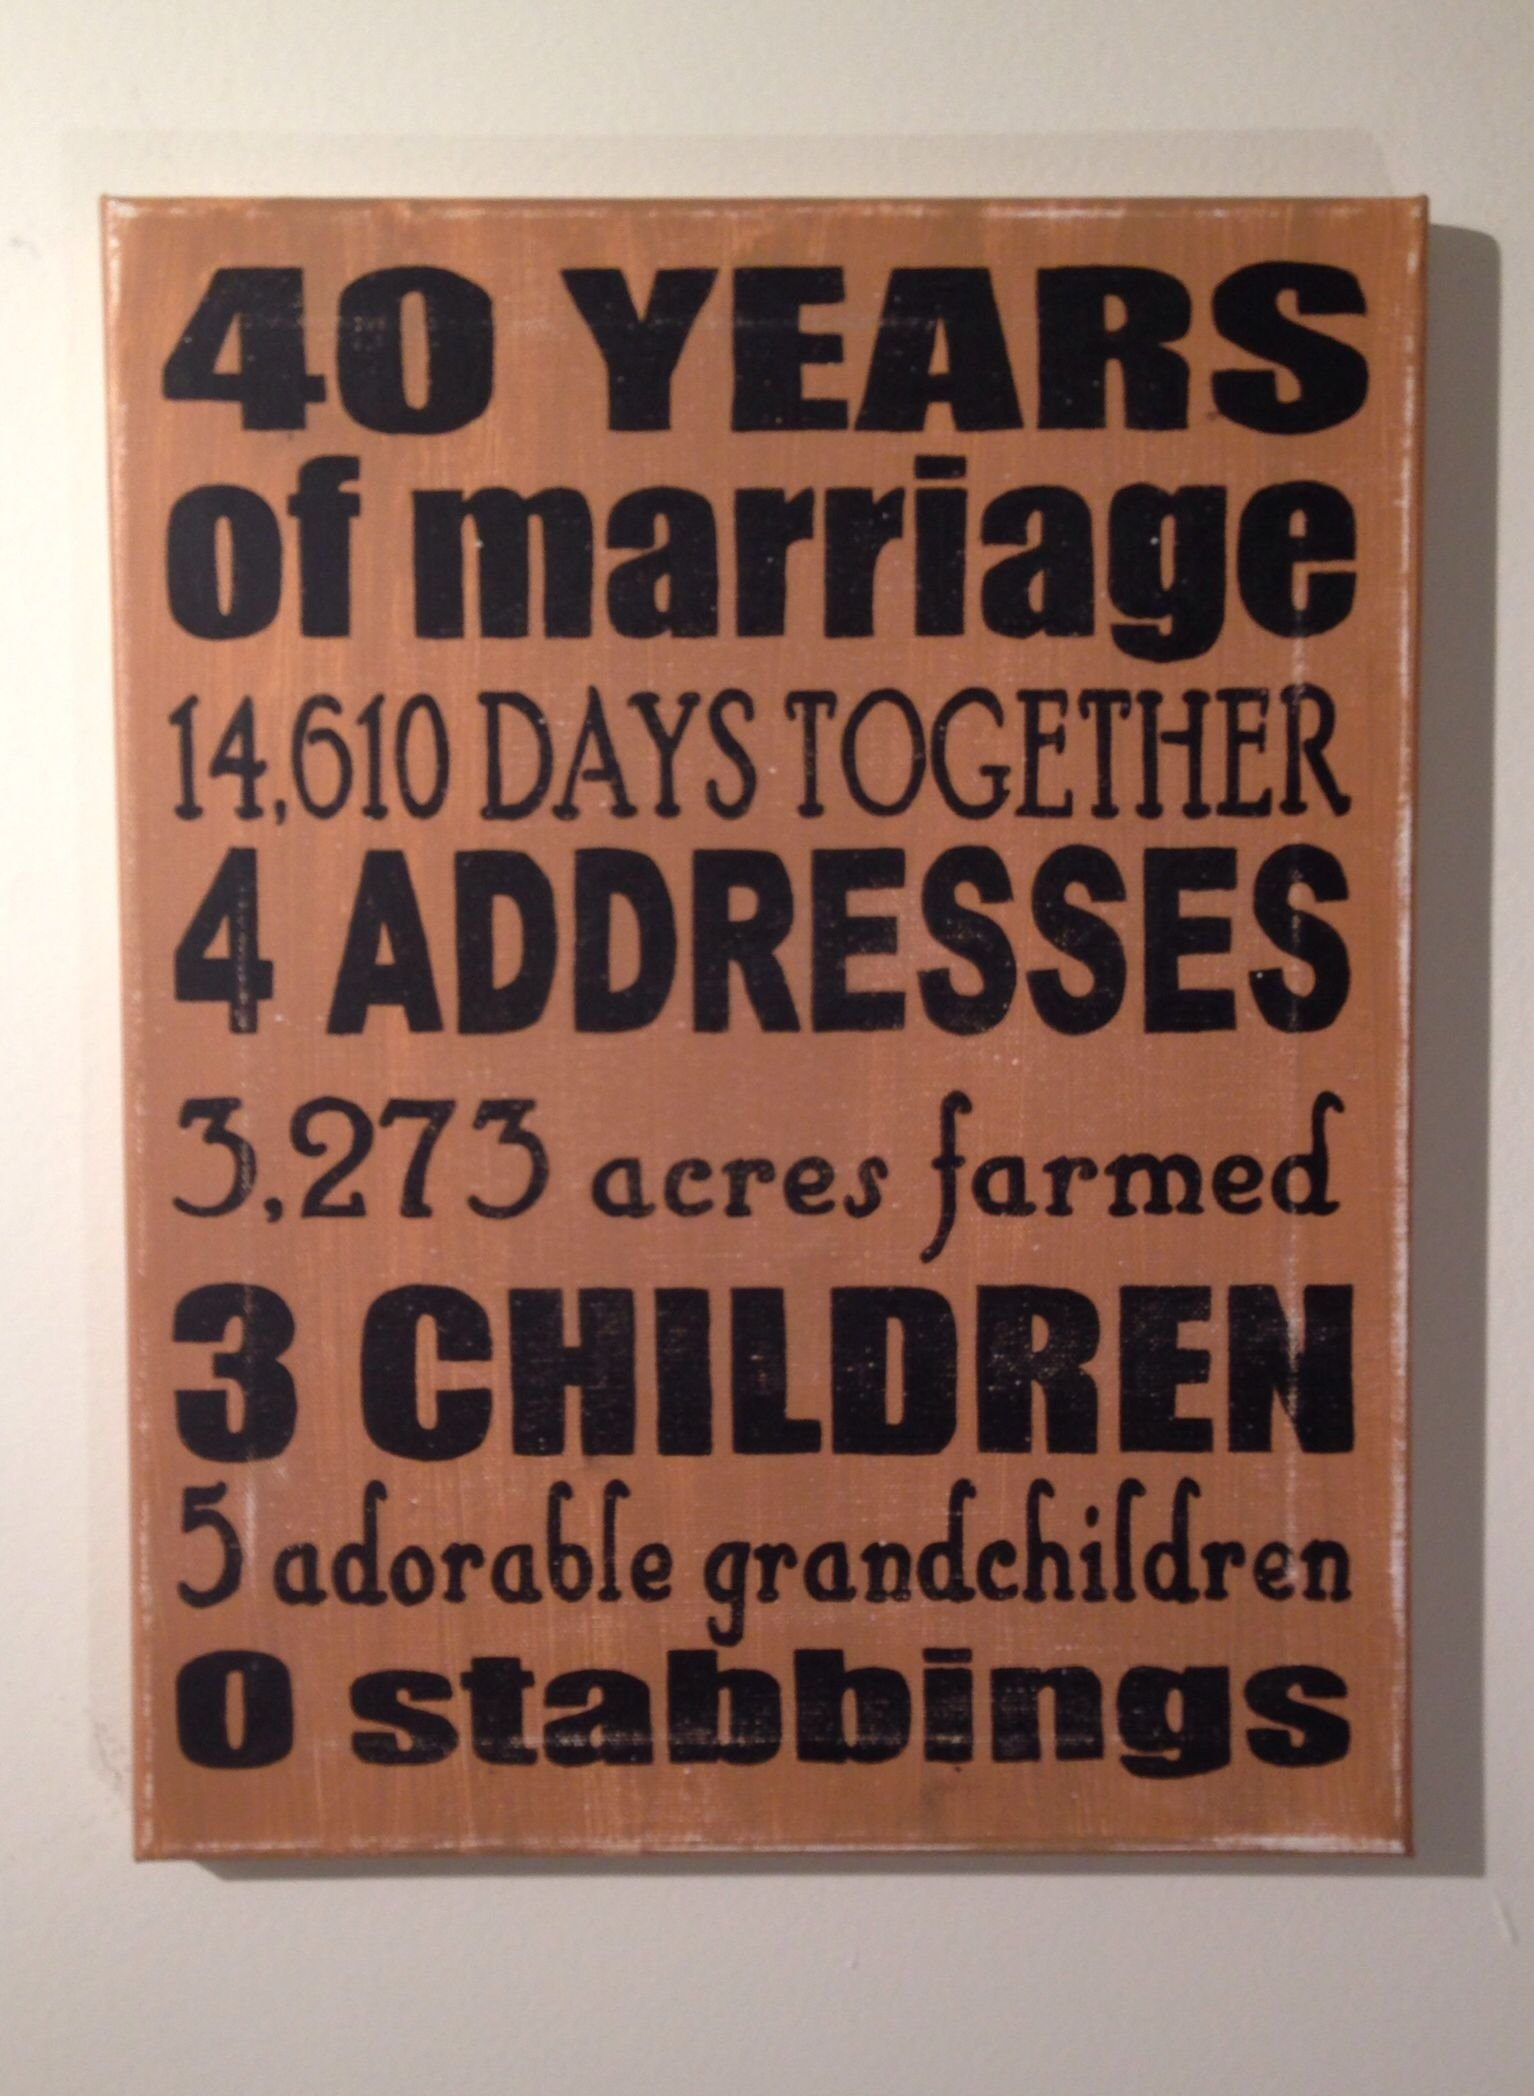 10 Awesome 14 Year Anniversary Gift Ideas for my parents 40th wedding anniversary add successful 5 2020